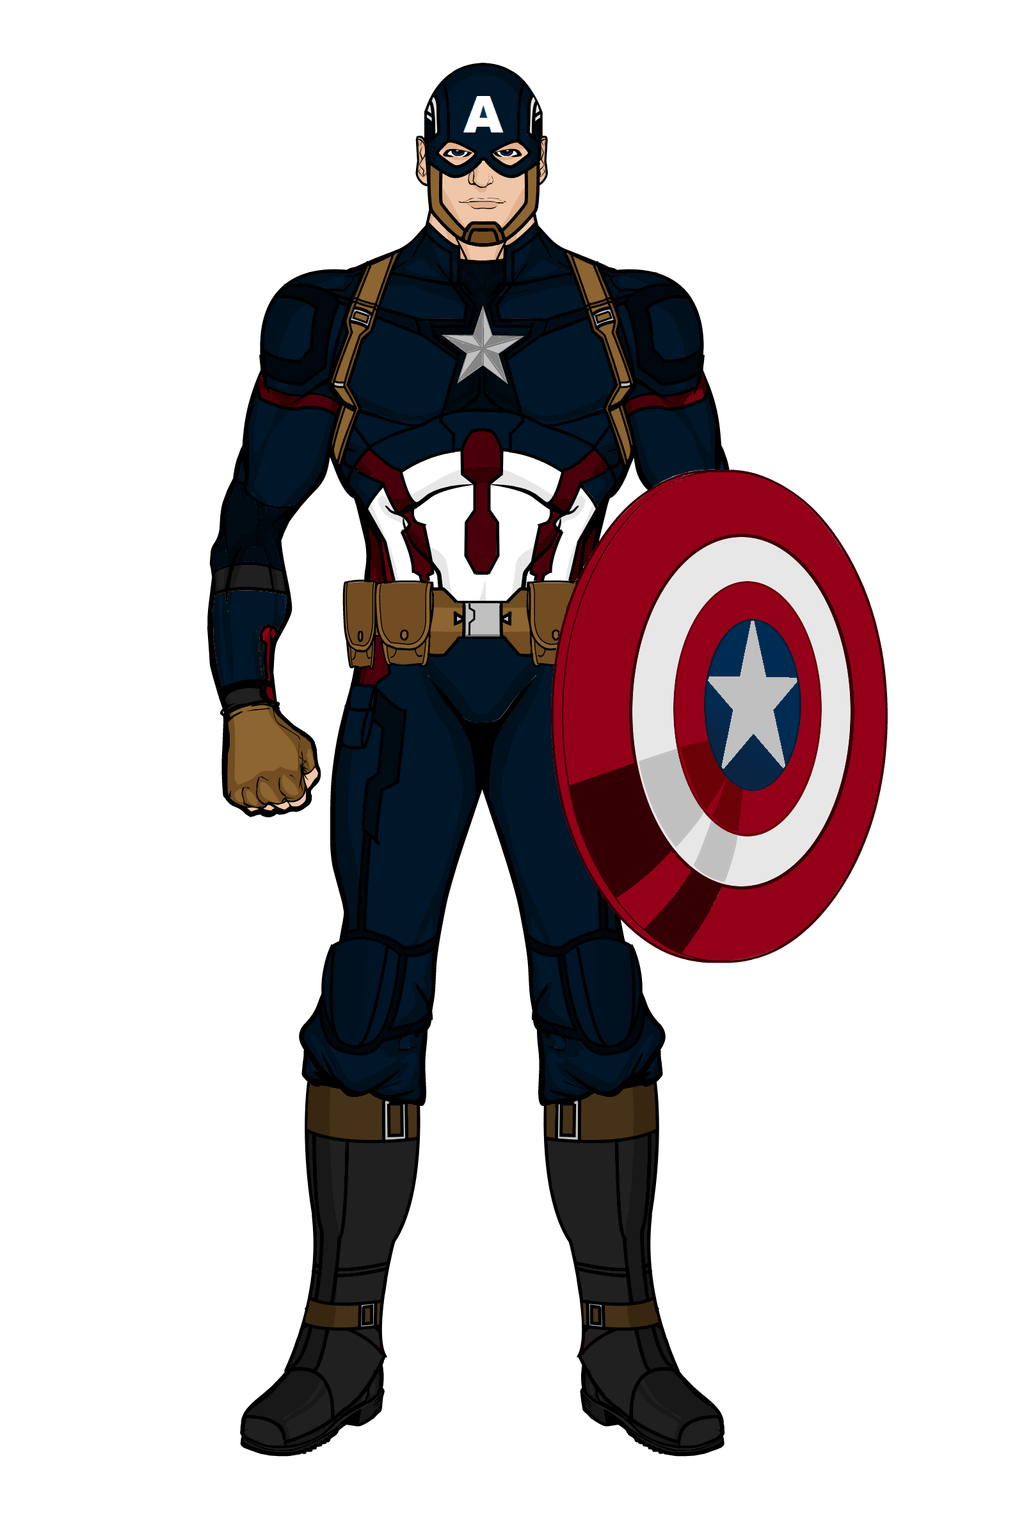 hight resolution of 1024x1536 captain america mark iii civil war heromachine by aniartluke82